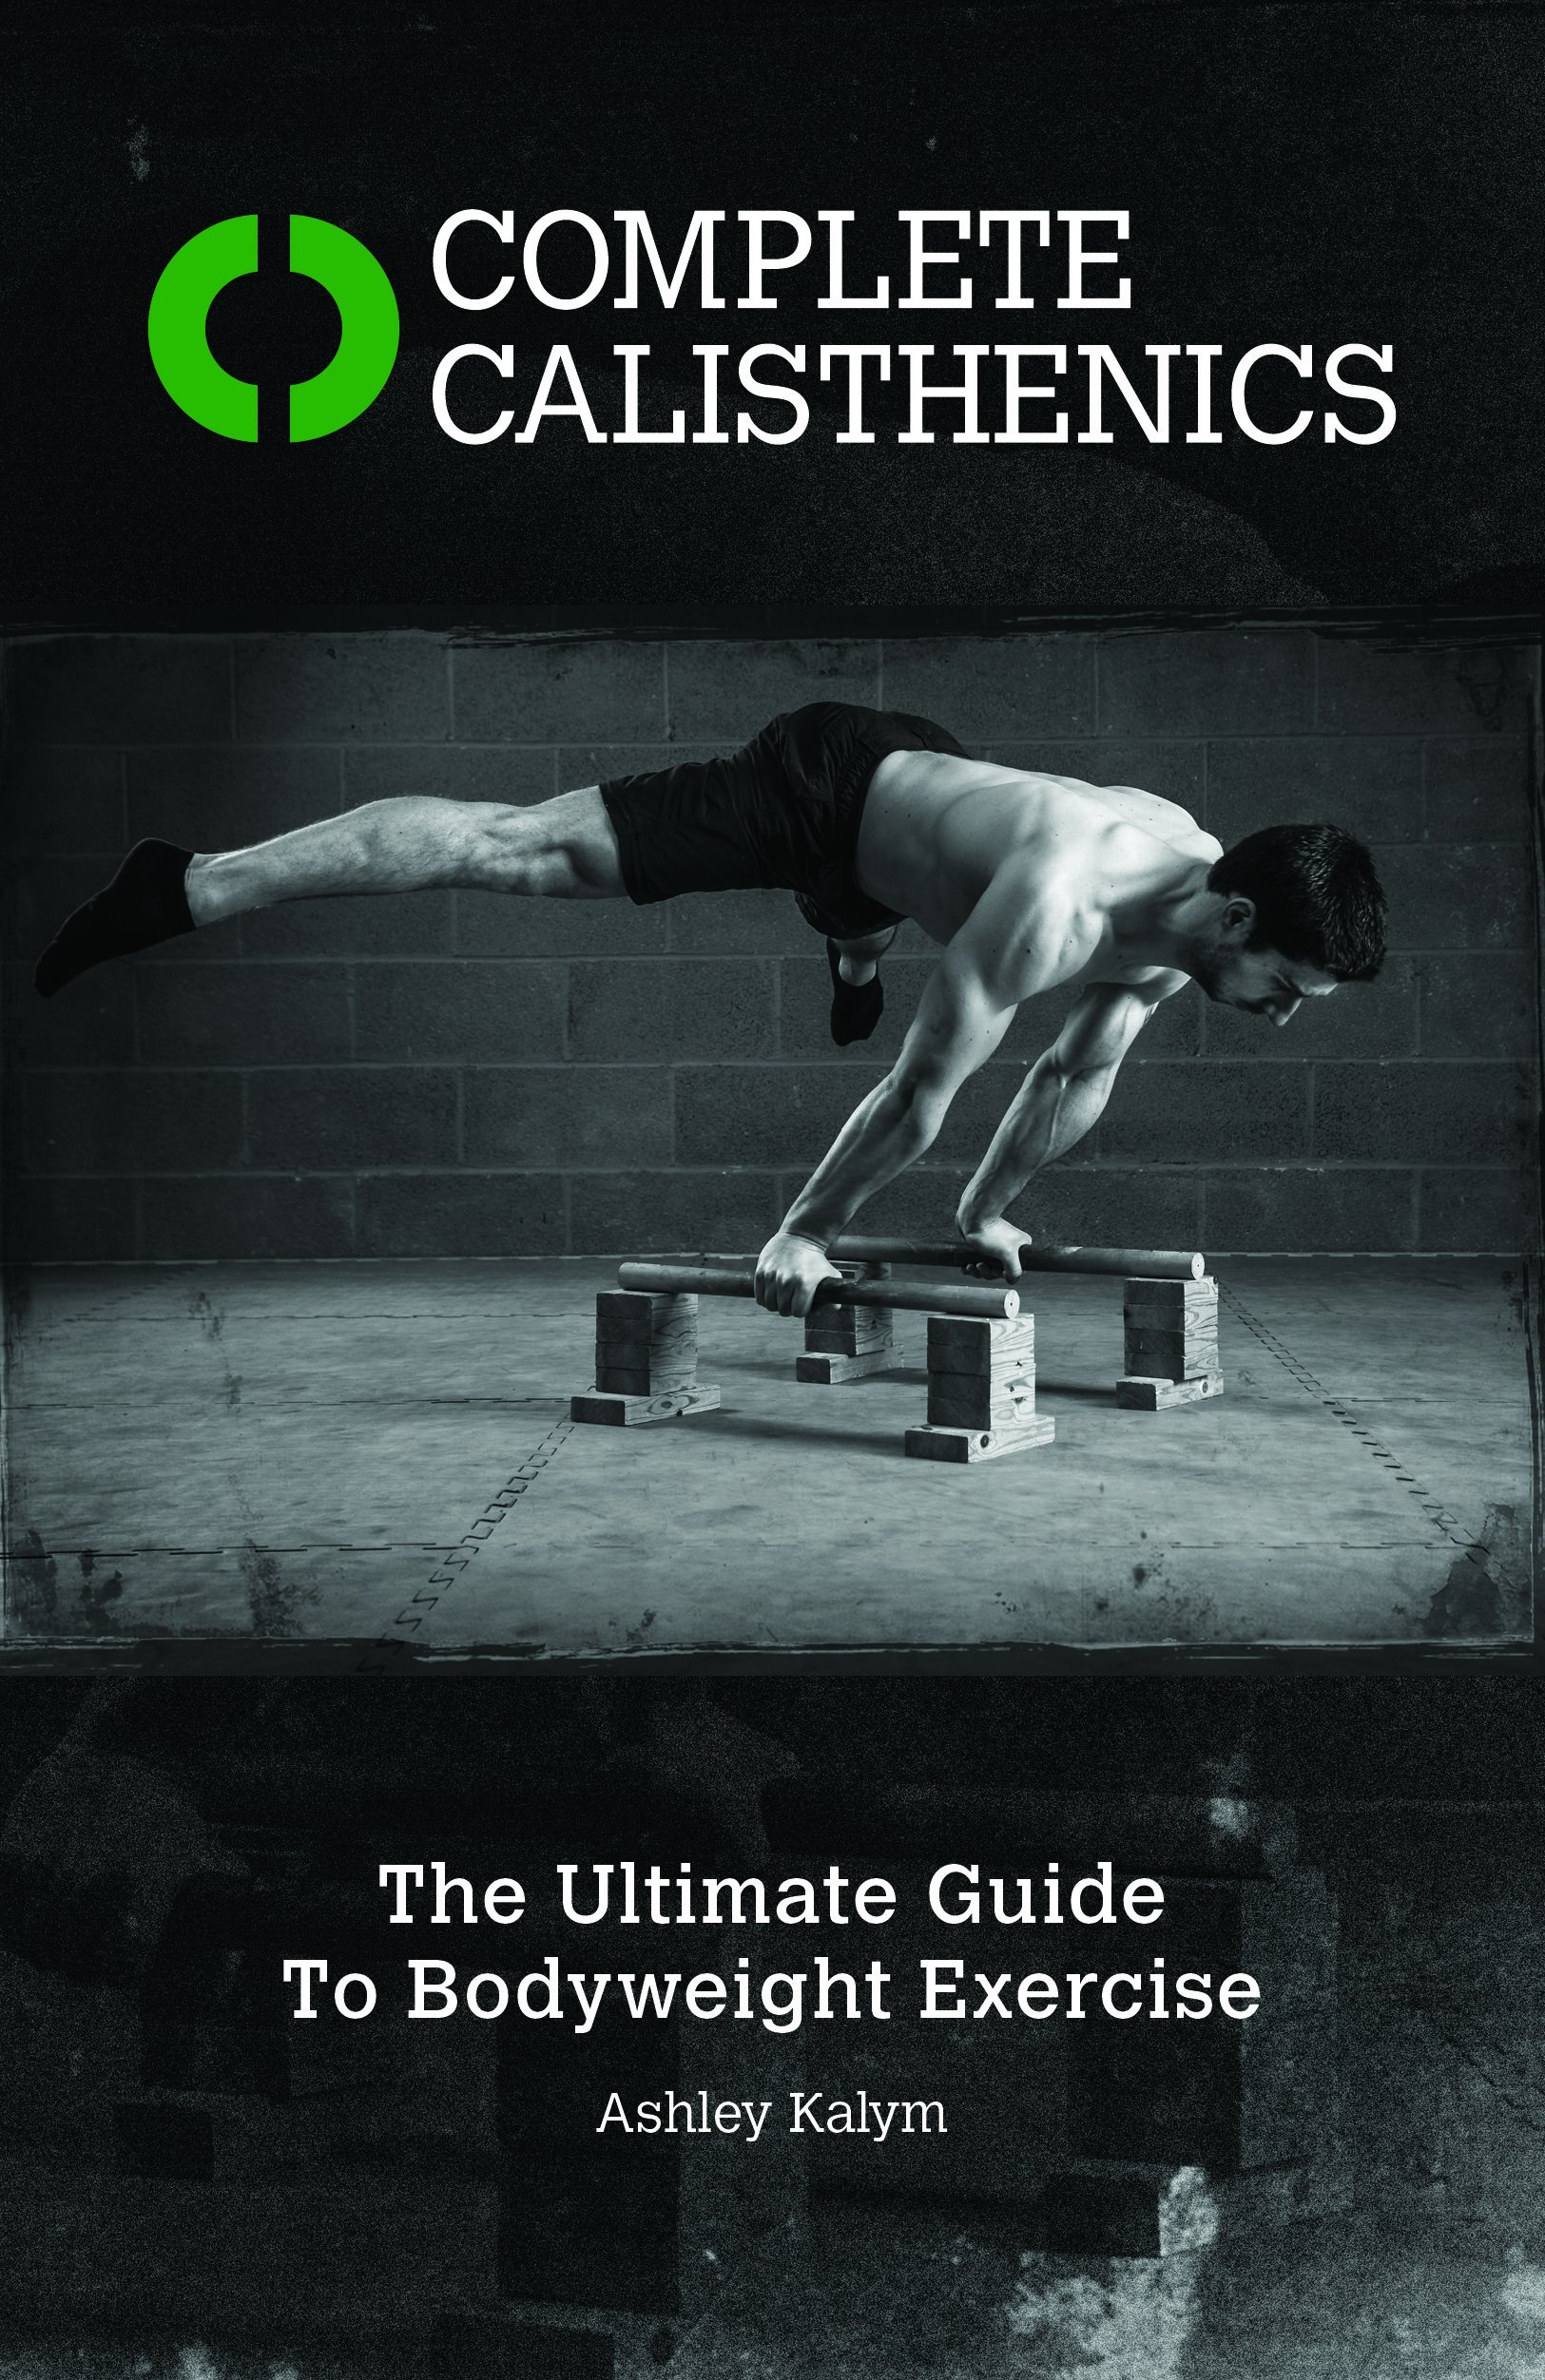 Complete Calisthenics The Ultimate Guide To Bodyweight Exercise Ashley Kalym 8601410649906 Amazon Com Books